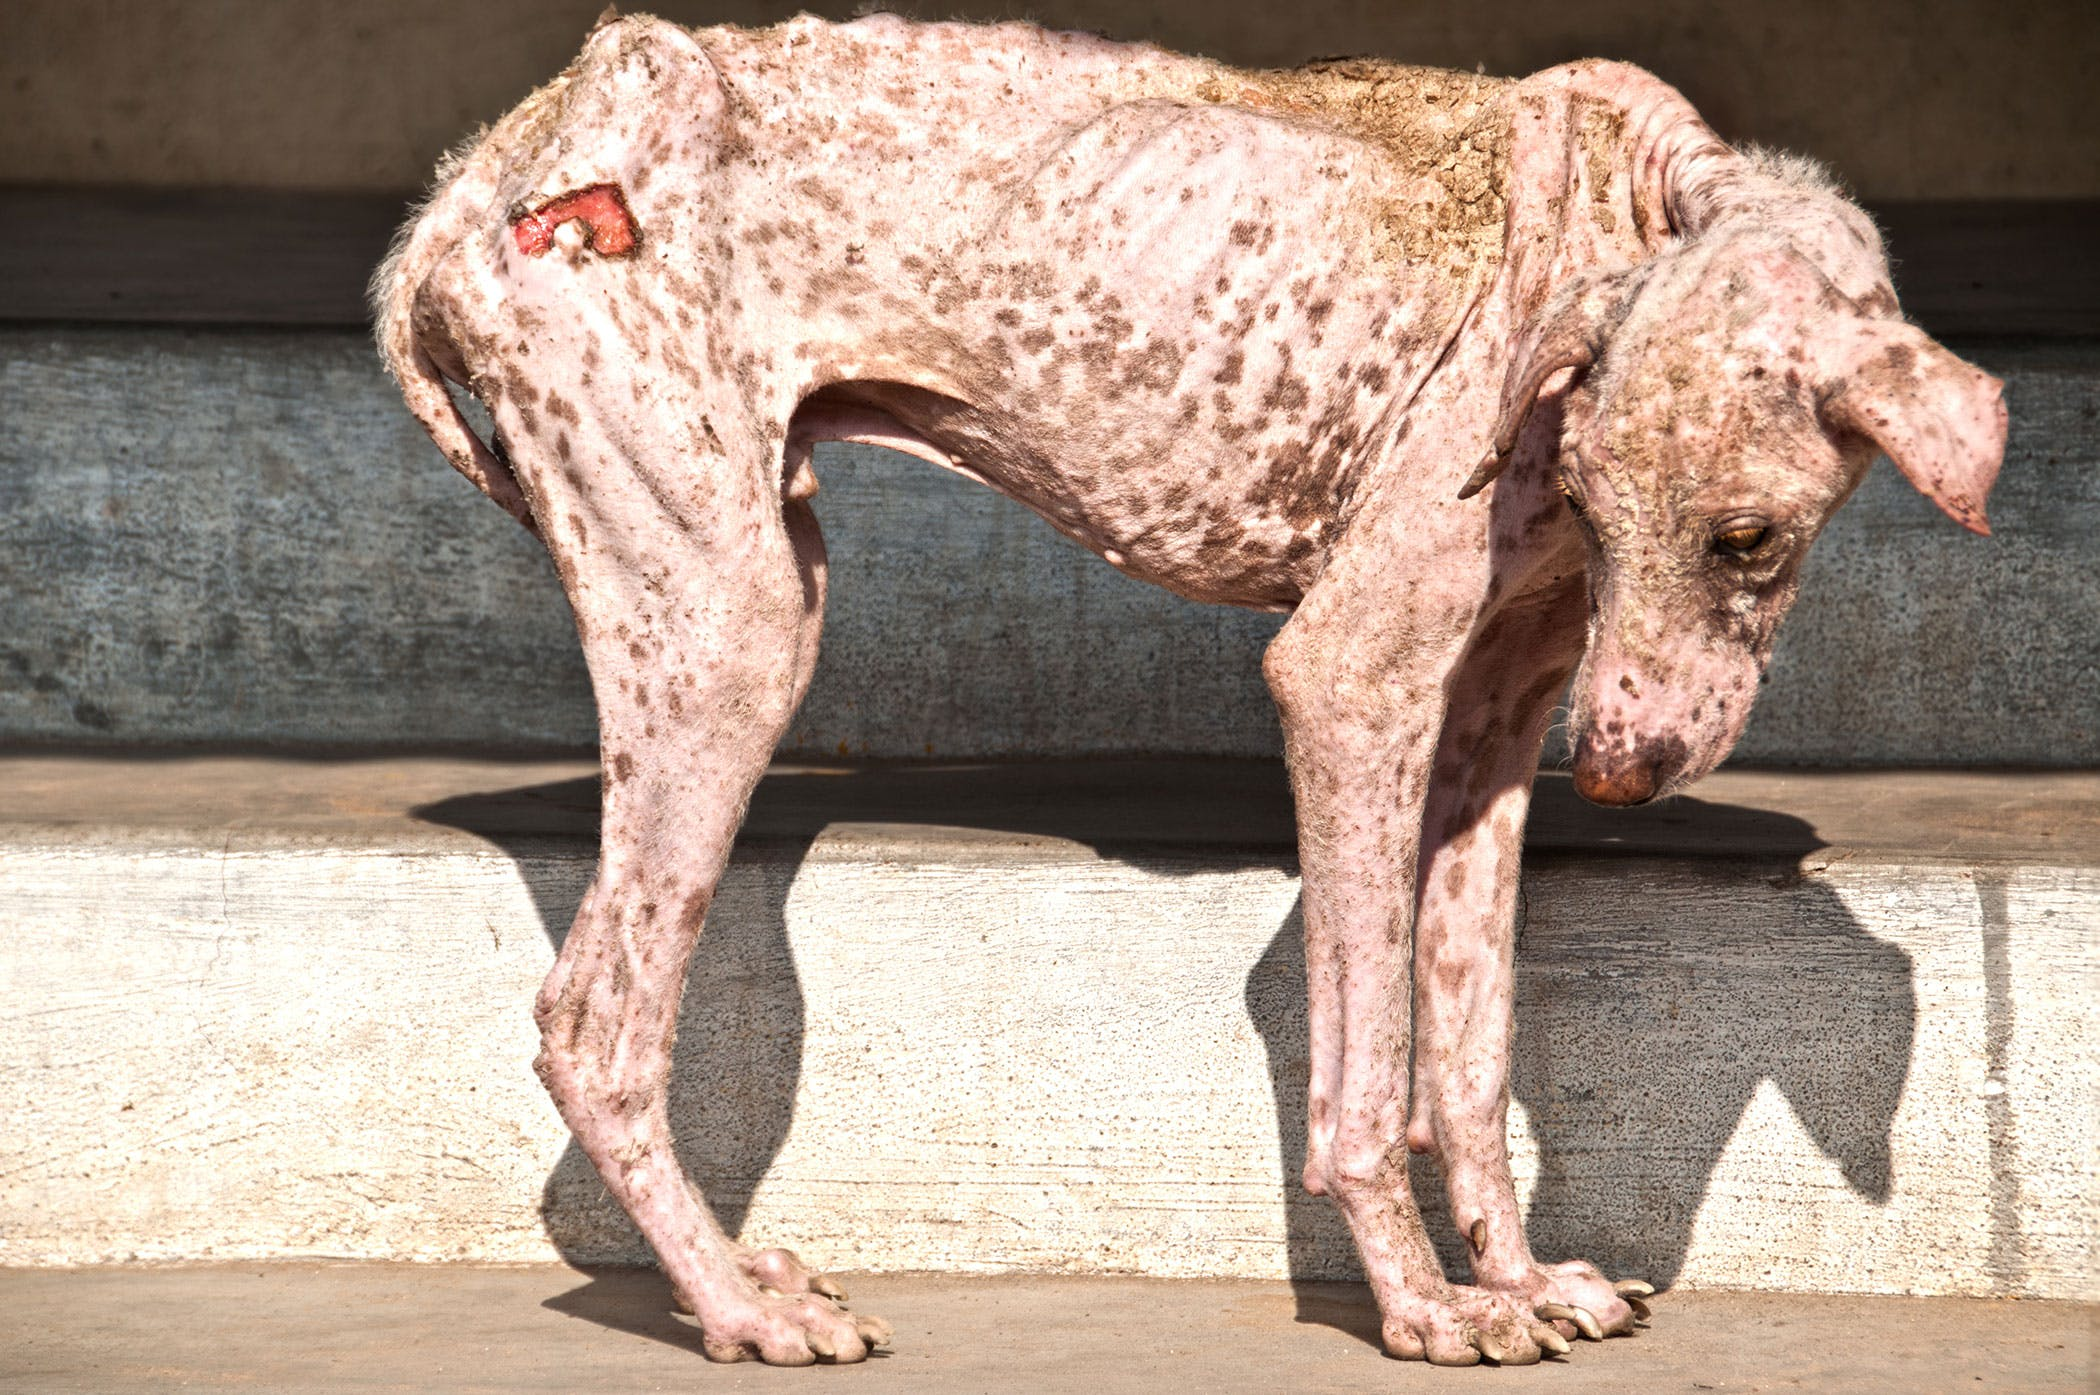 sarcoptic mange in dogs symptoms causes diagnosis treatment